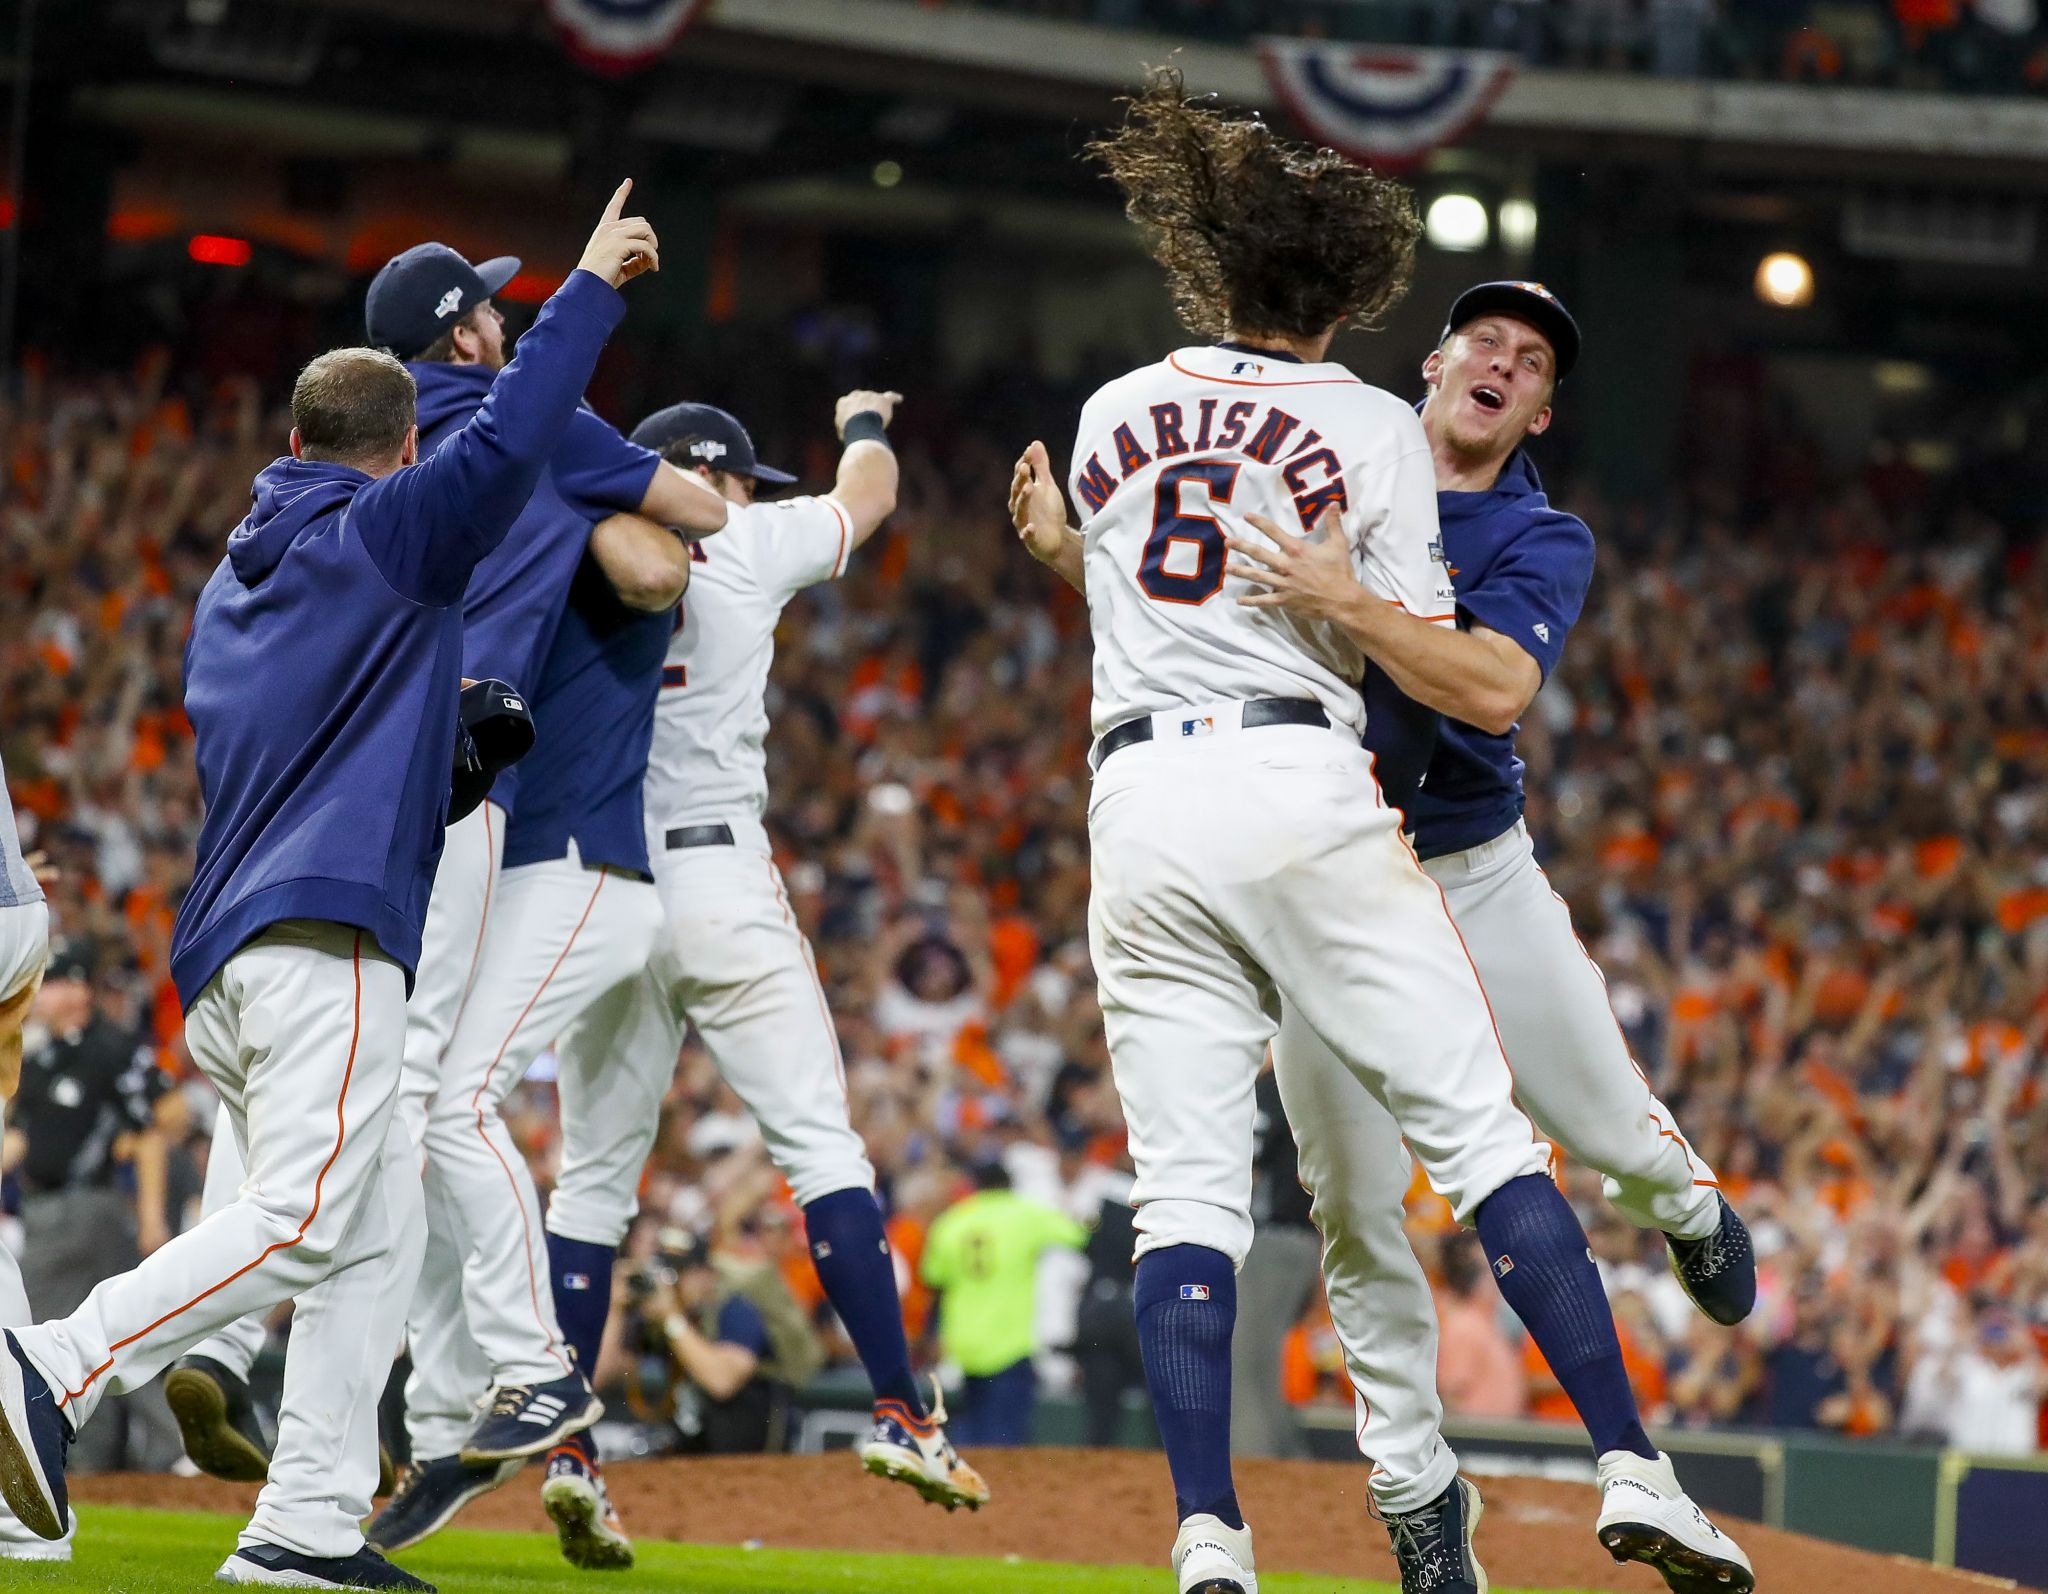 Astros World Series Run: Here's the entire 2019 World Series schedule